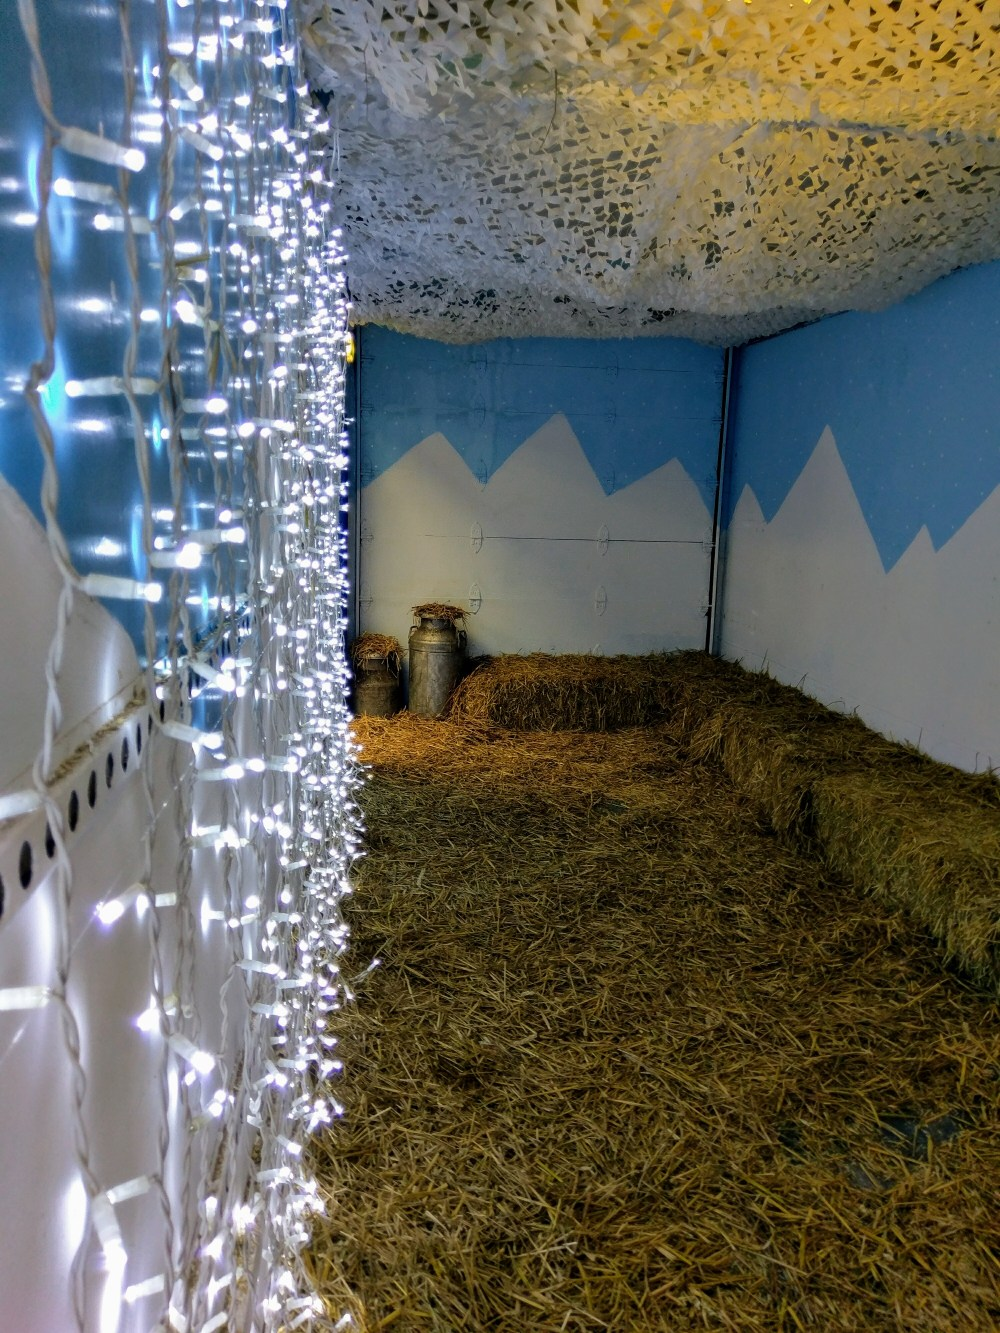 A room with hay on the floor and hay bales all around the edge. There are lights all down one wall.